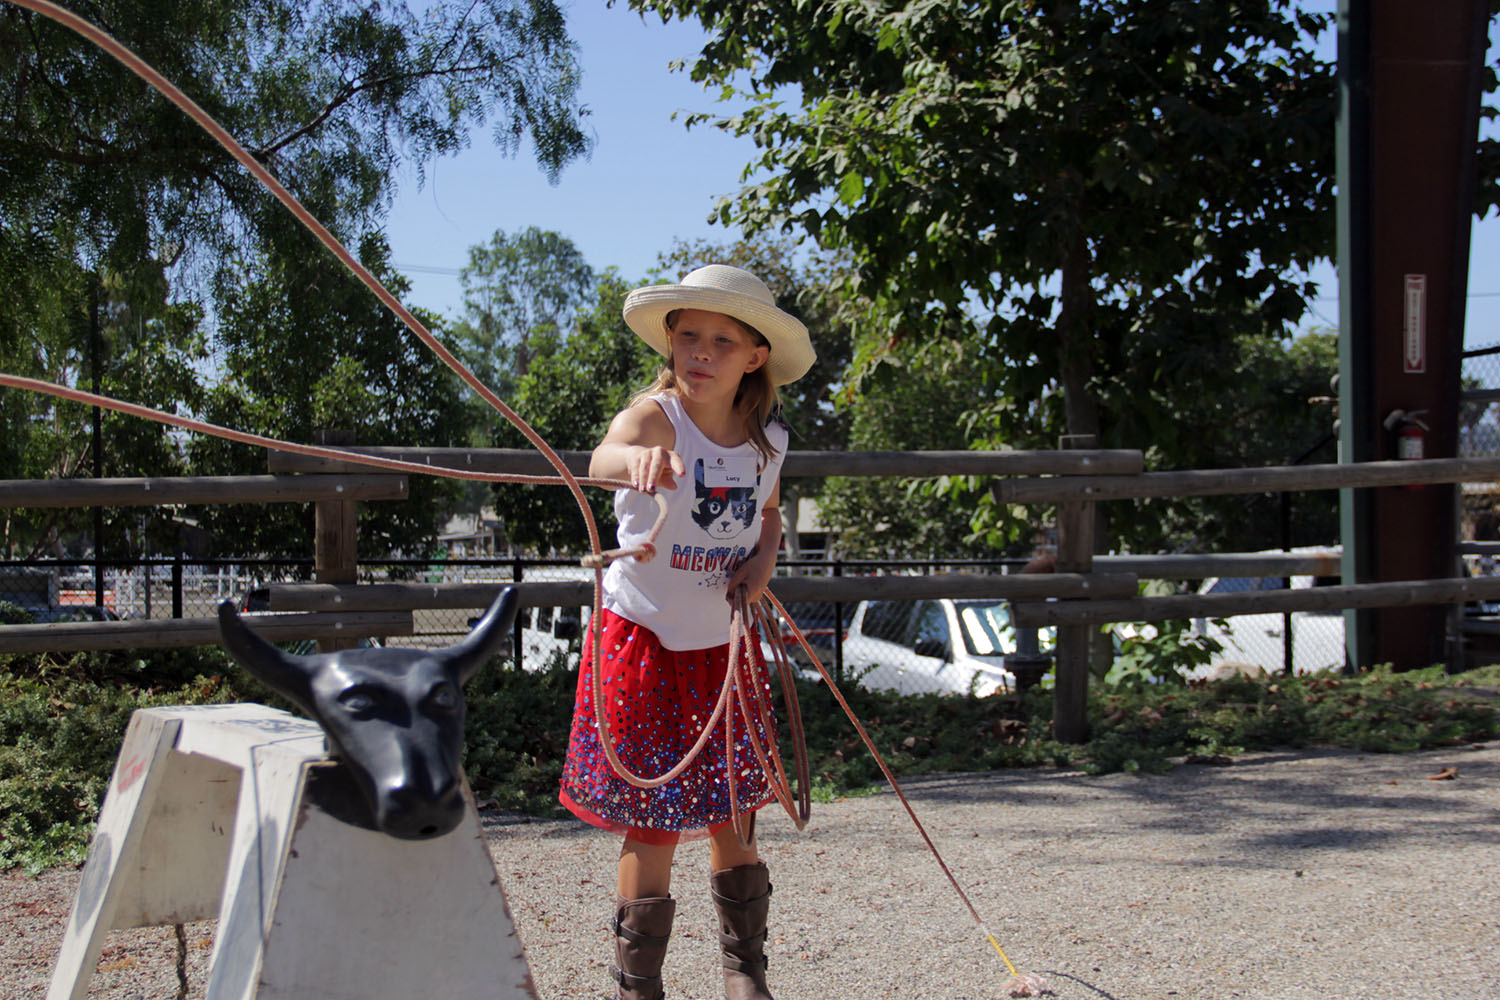 Lucy Kurtenacker releases her lasso as she tries to rope in the fake steer used to train children about rodeo-based skills at the J.F. Shea Therapeutic Riding Center's annual Cowboy Camp on Wednesday, Aug. 14. Photo: Shawn Raymundo